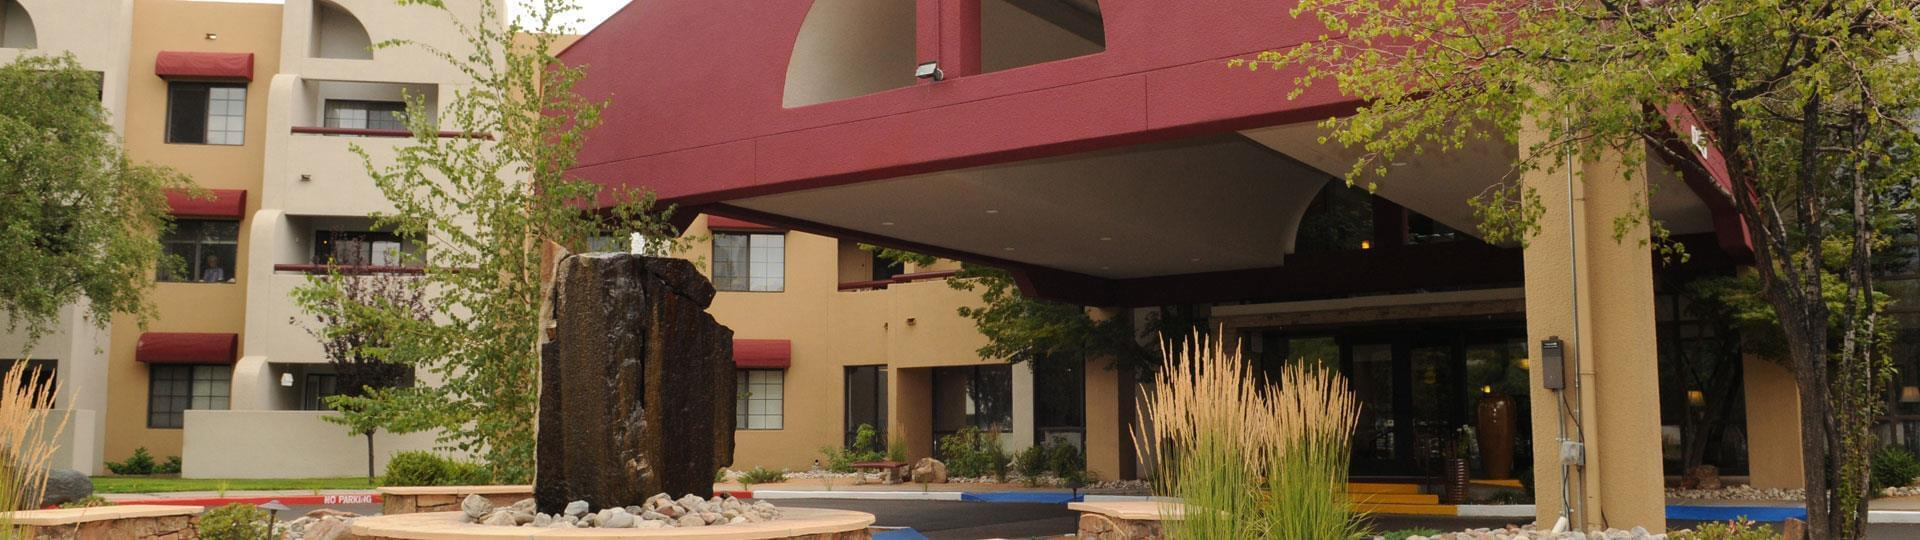 Photo of The Montebello on Academy, Assisted Living, Nursing Home, Independent Living, CCRC, Albuquerque, NM 6